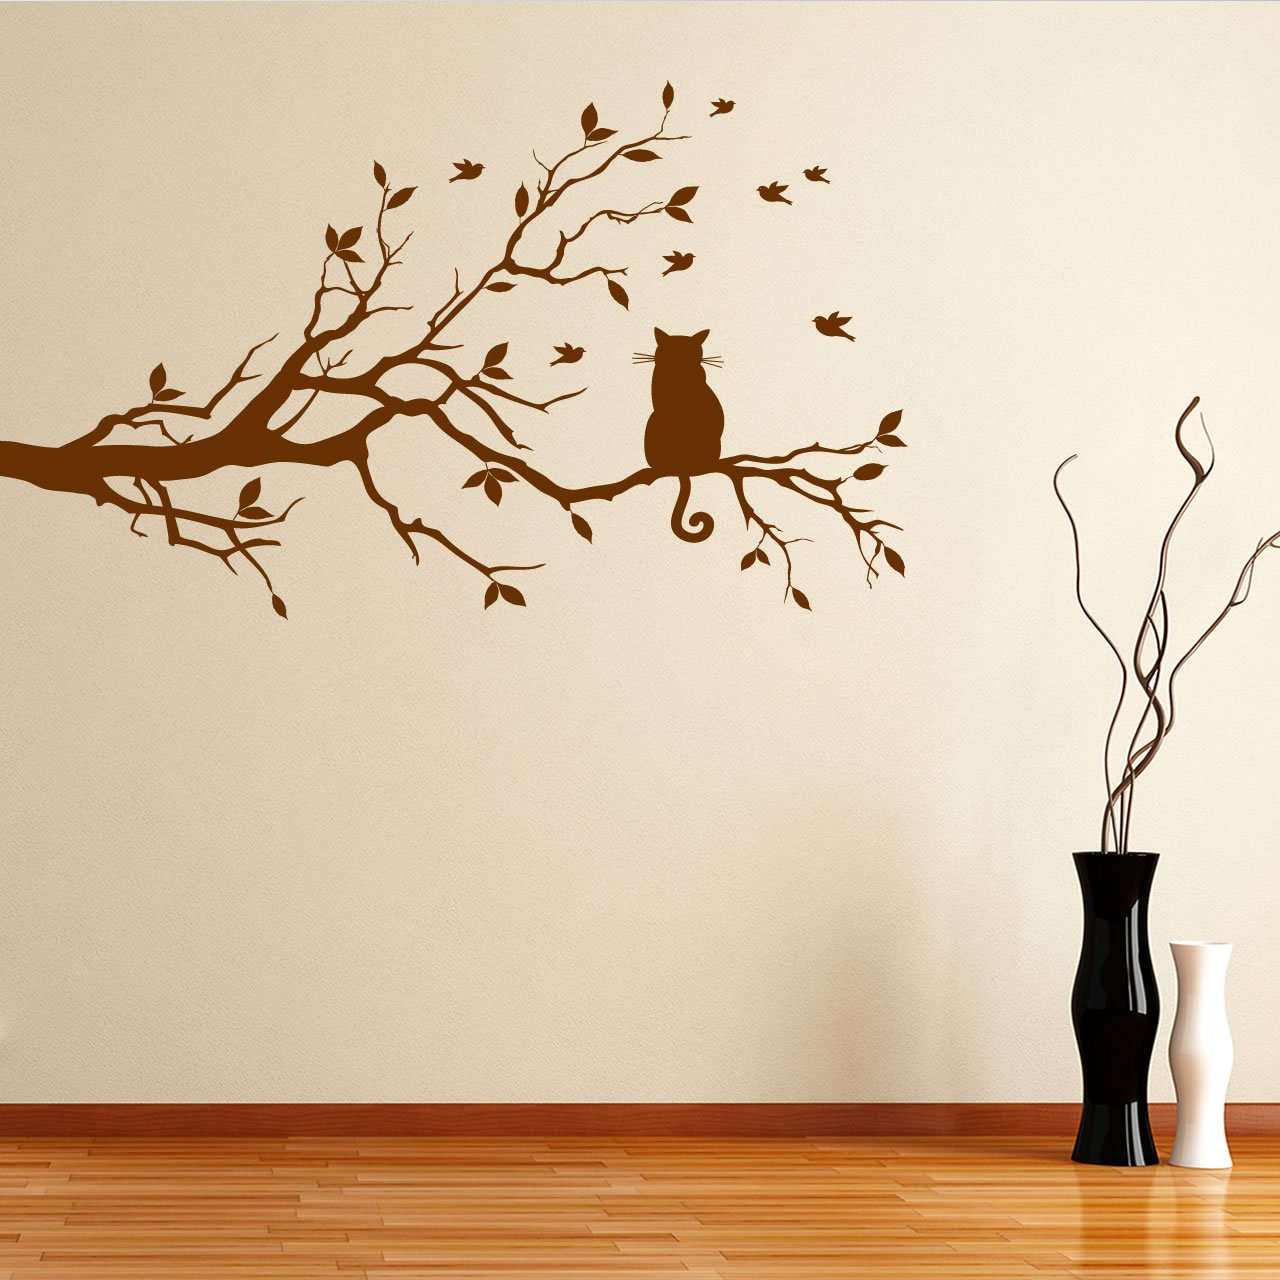 Delightful Cat On A Branch Wall Sticker / Decal   Black   W96 X H57: Amazon.co.uk:  Kitchen U0026 Home Part 11